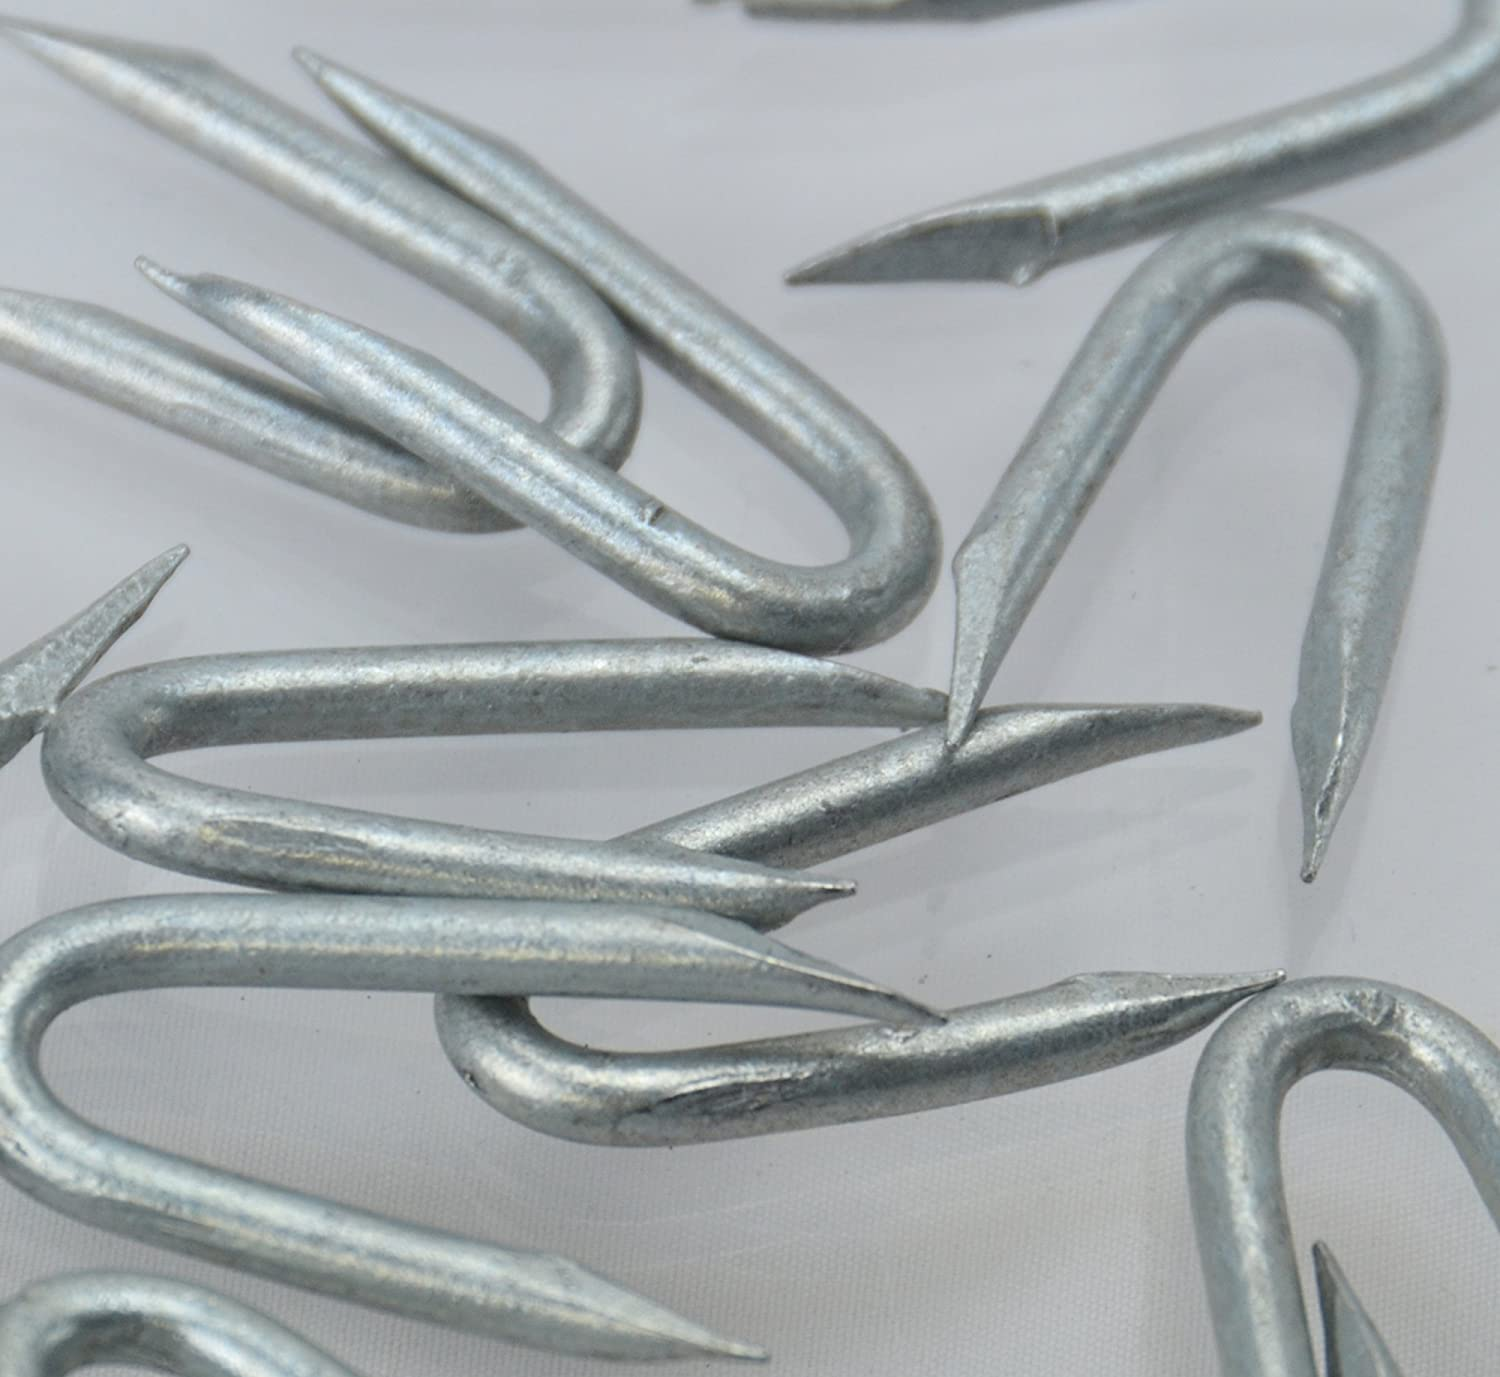 U Shaped Nails 25mm Galvanised Staples For Wire Fencing Staples